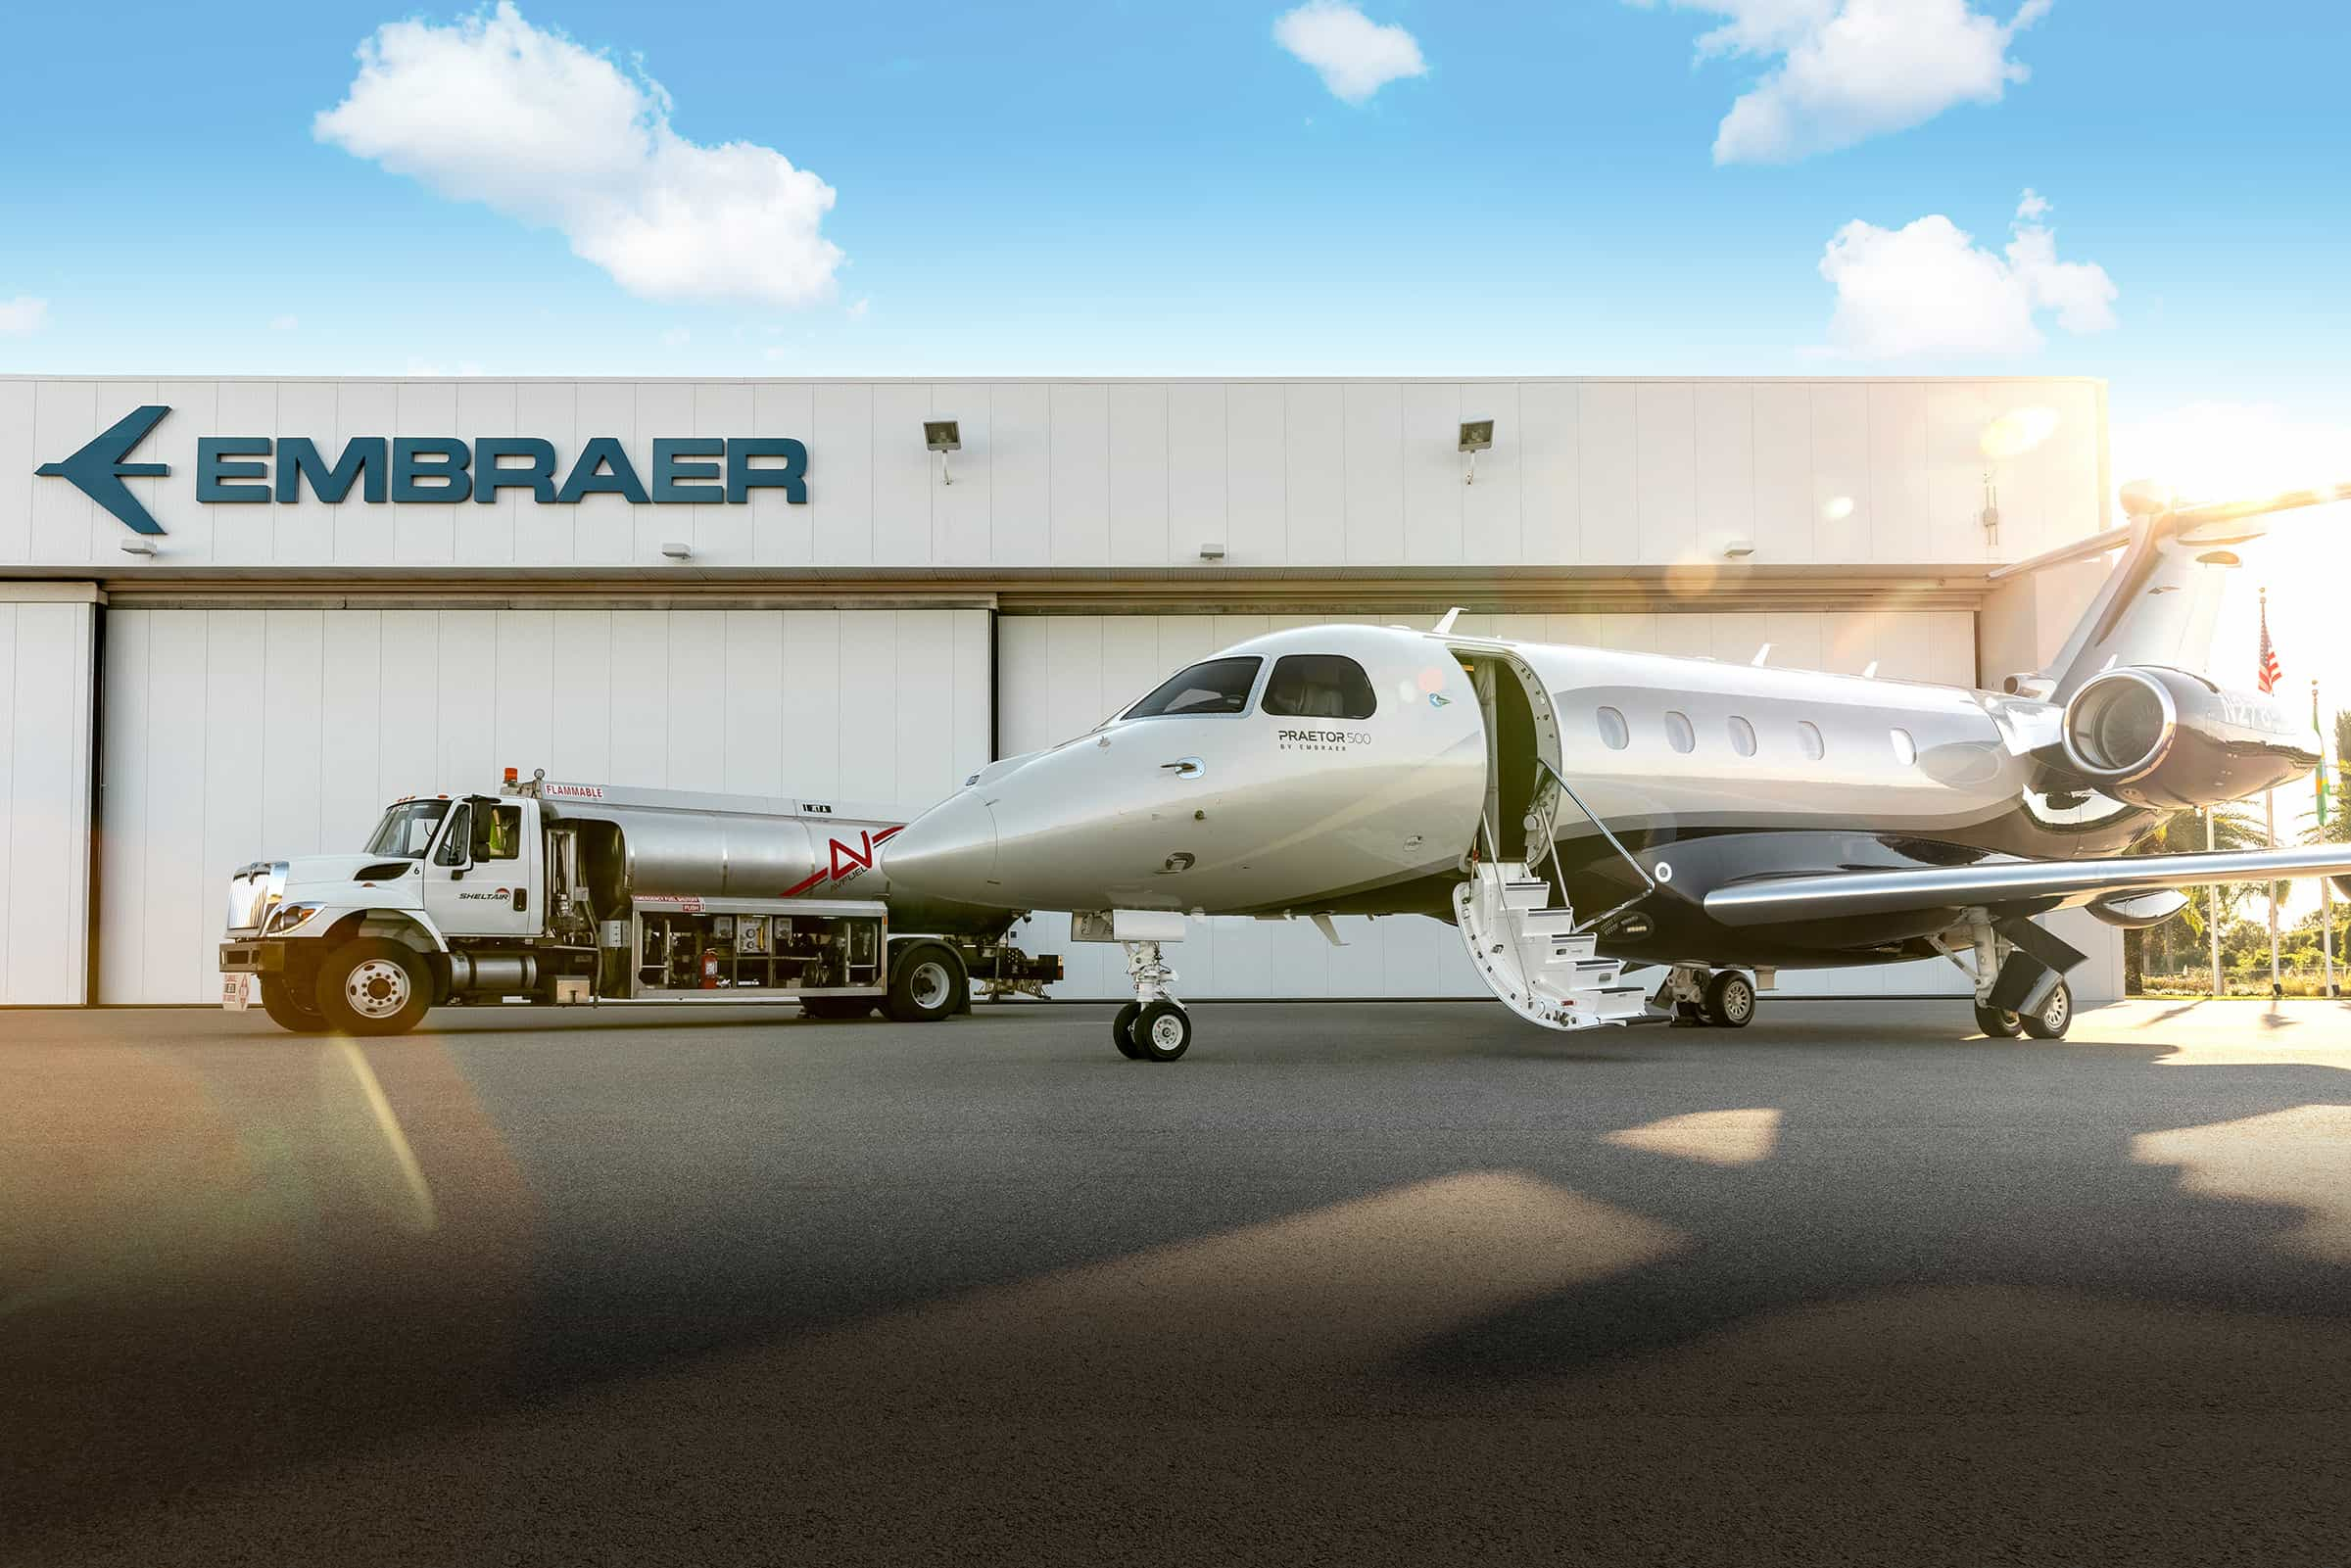 Sheltair Aviation, a leading aviation services and real estate company, has provided Embraer with safe storage and handling services for sustainable aviation fuel (SAF) ahead of the NBAA Business Aviation Convention & Exhibition